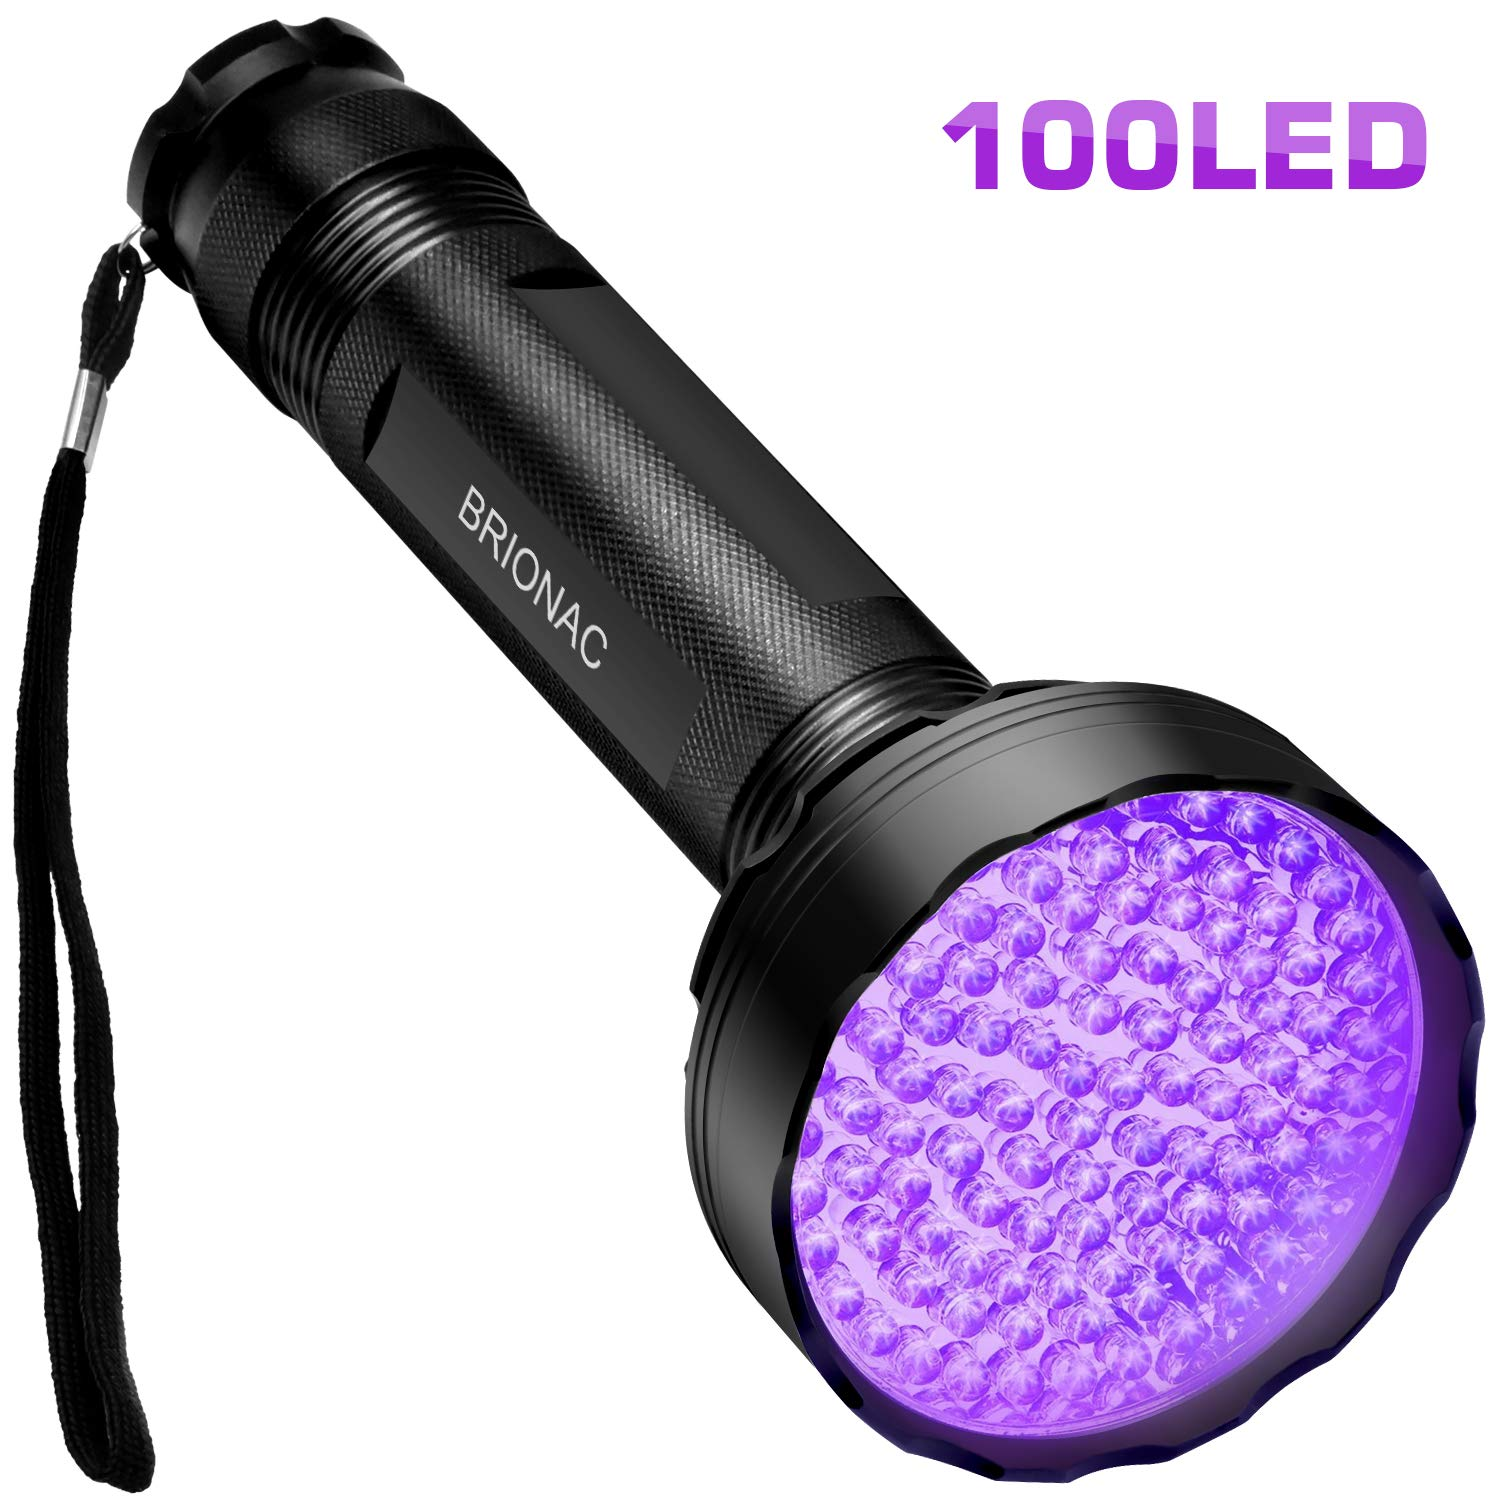 BRIONAC UV Black Light Flashlight, 100 LED 395nm Wavelength for Pet (Cat/Dog) Urine Detector, Dry Stains, Bed Bug and Scorpion with 6AAA Batteries (Not Included), Matching with Pet Odor Eliminator by BRIONAC